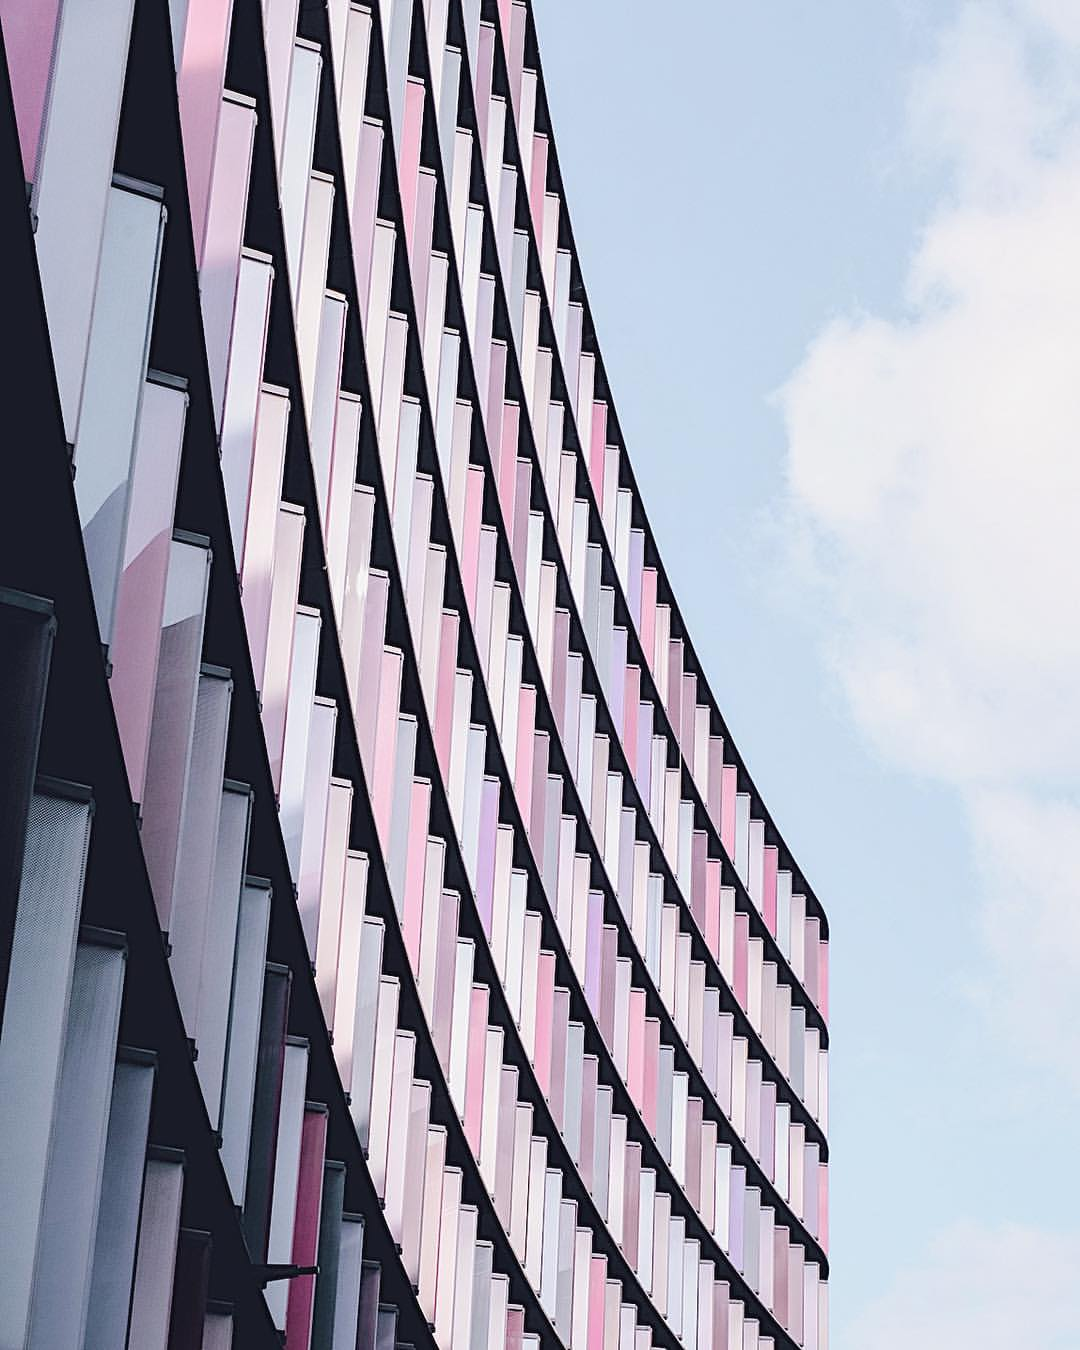 architecture_photography_13.jpg